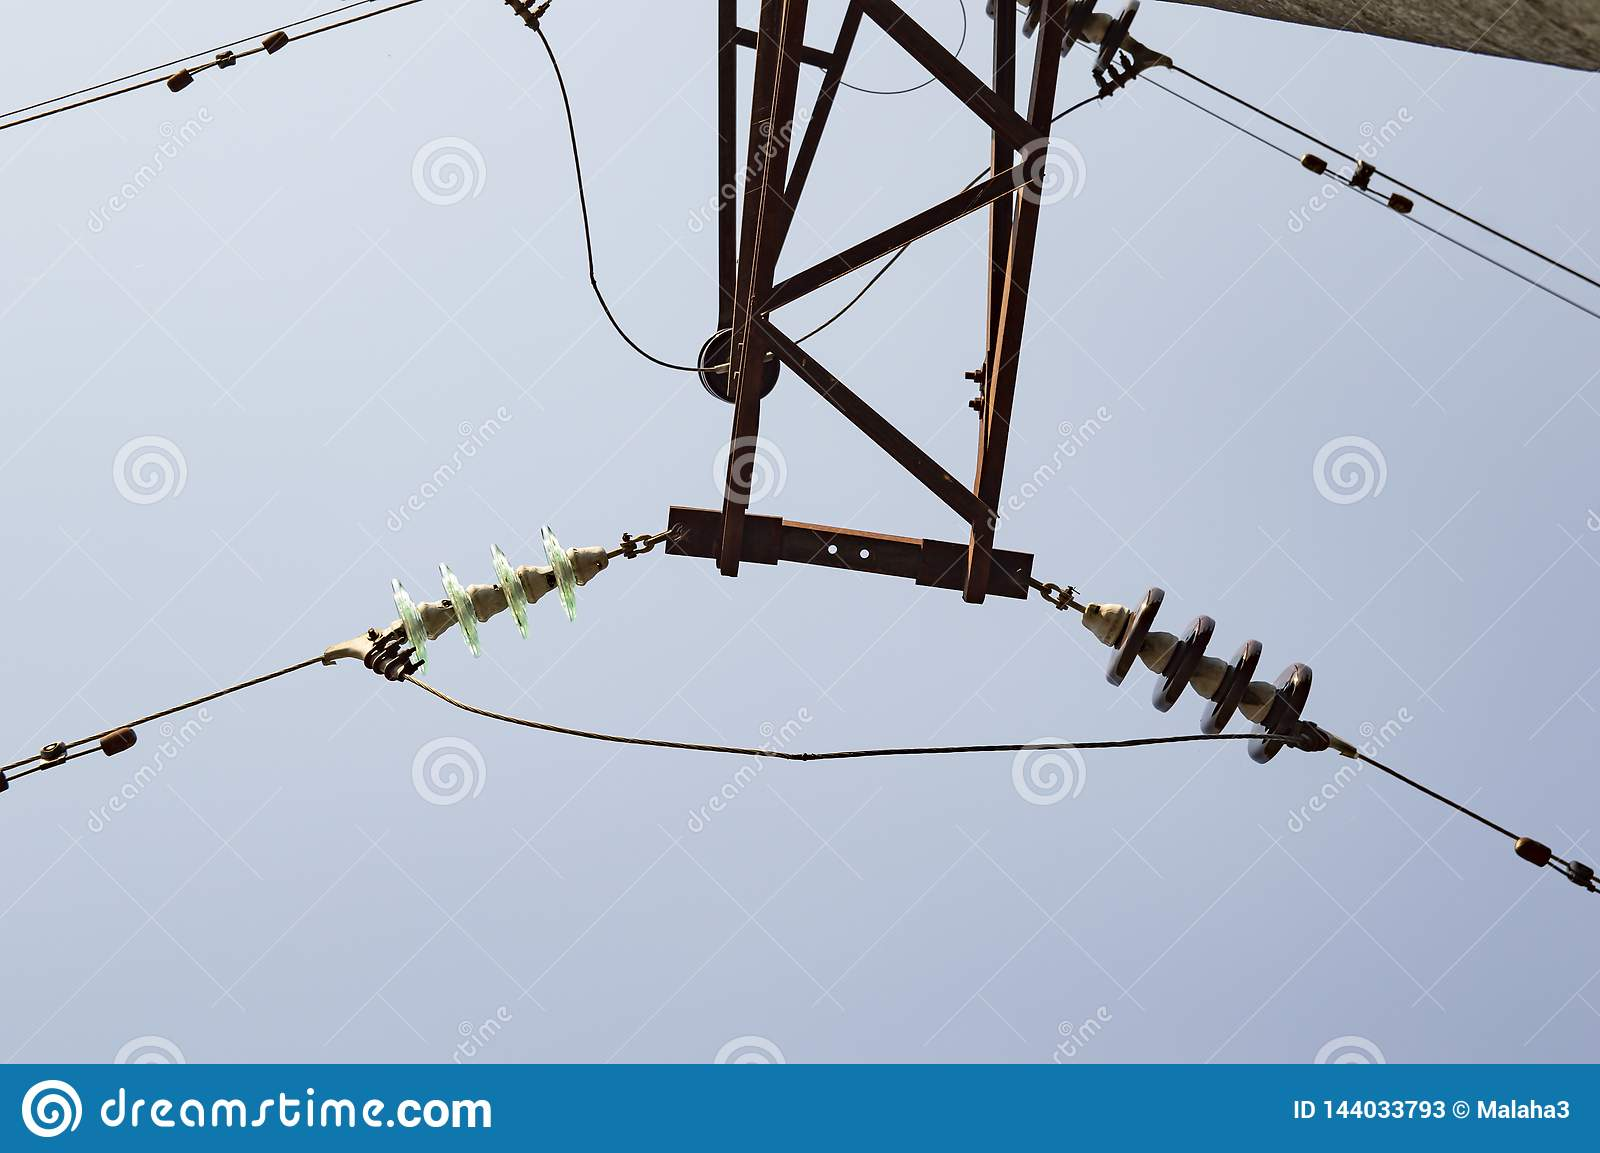 High-voltage line against the blue sky